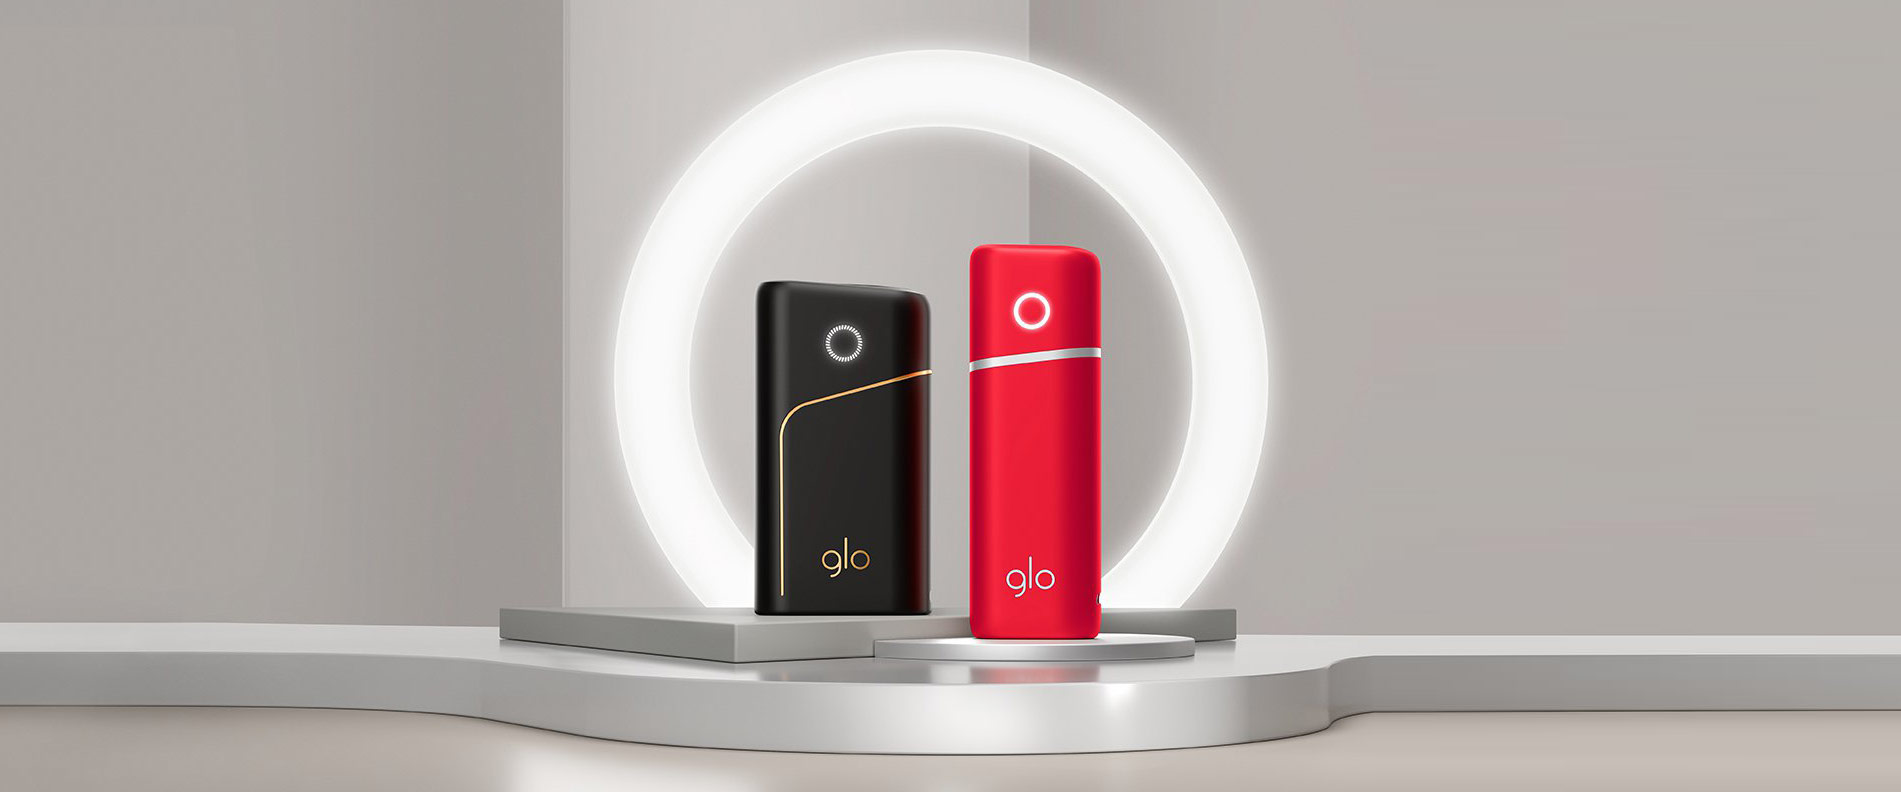 BAT launches new products: Glo Nano and Glo Pro